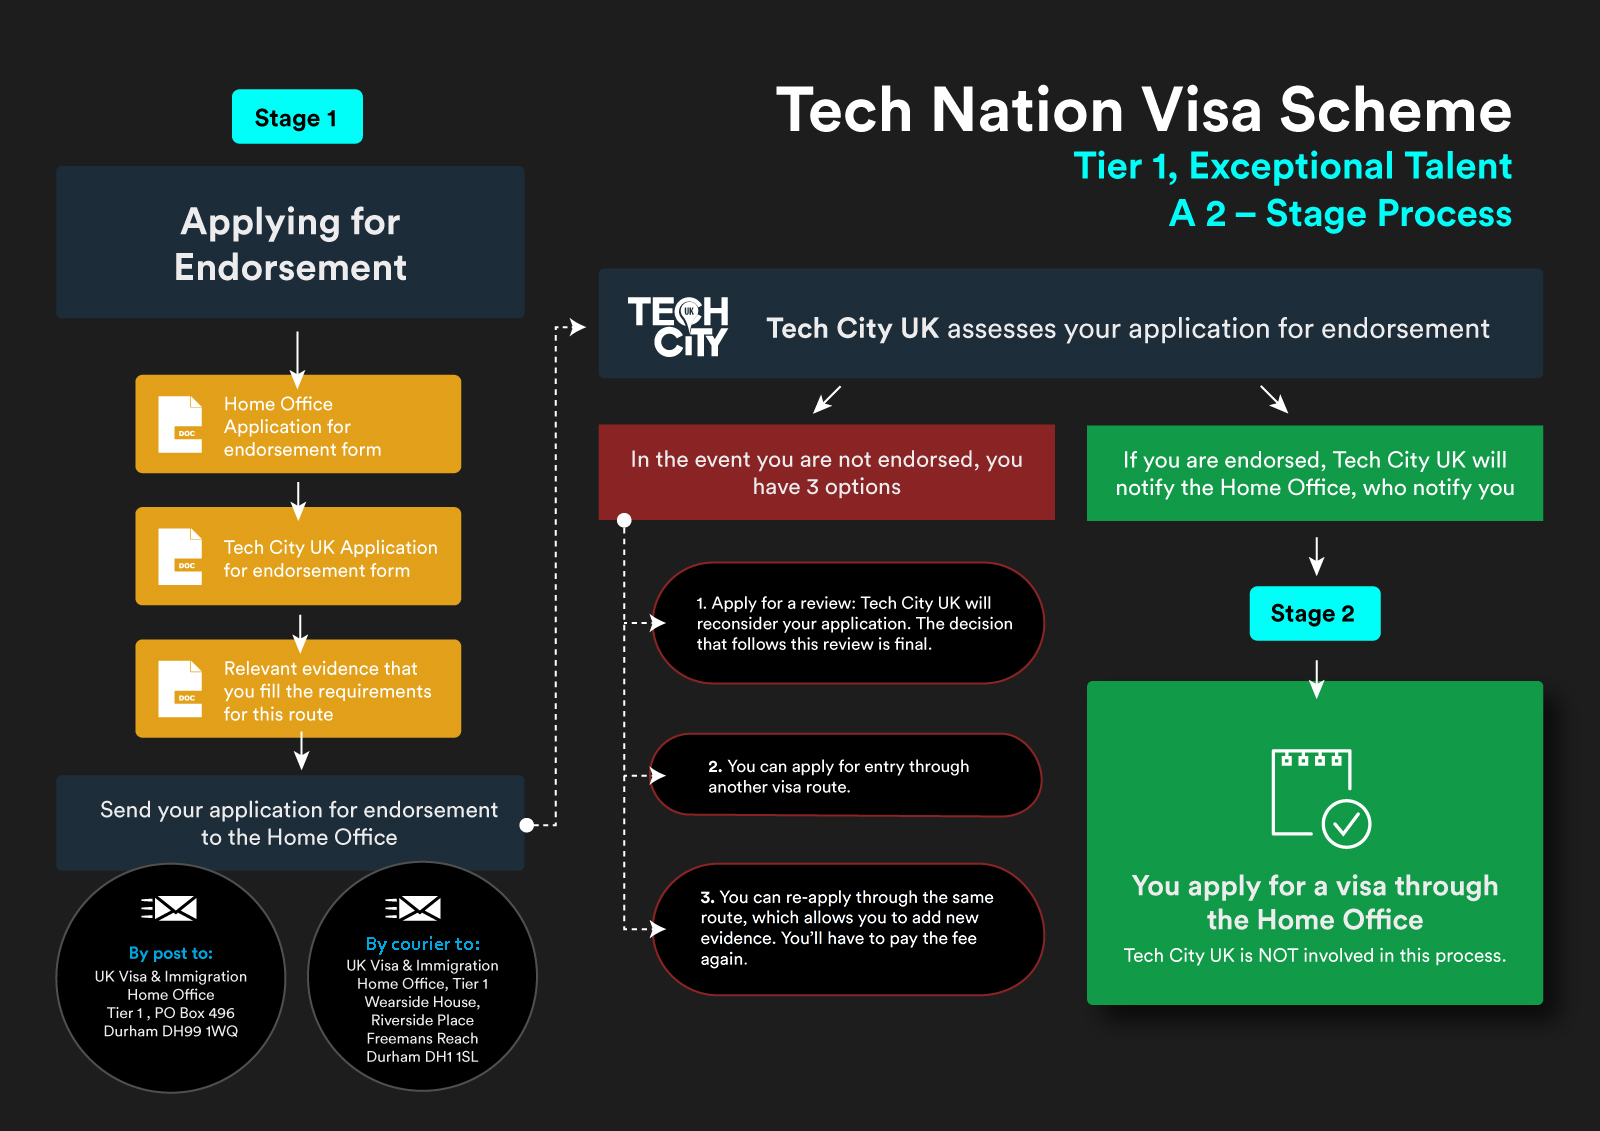 Tech Nation Visa